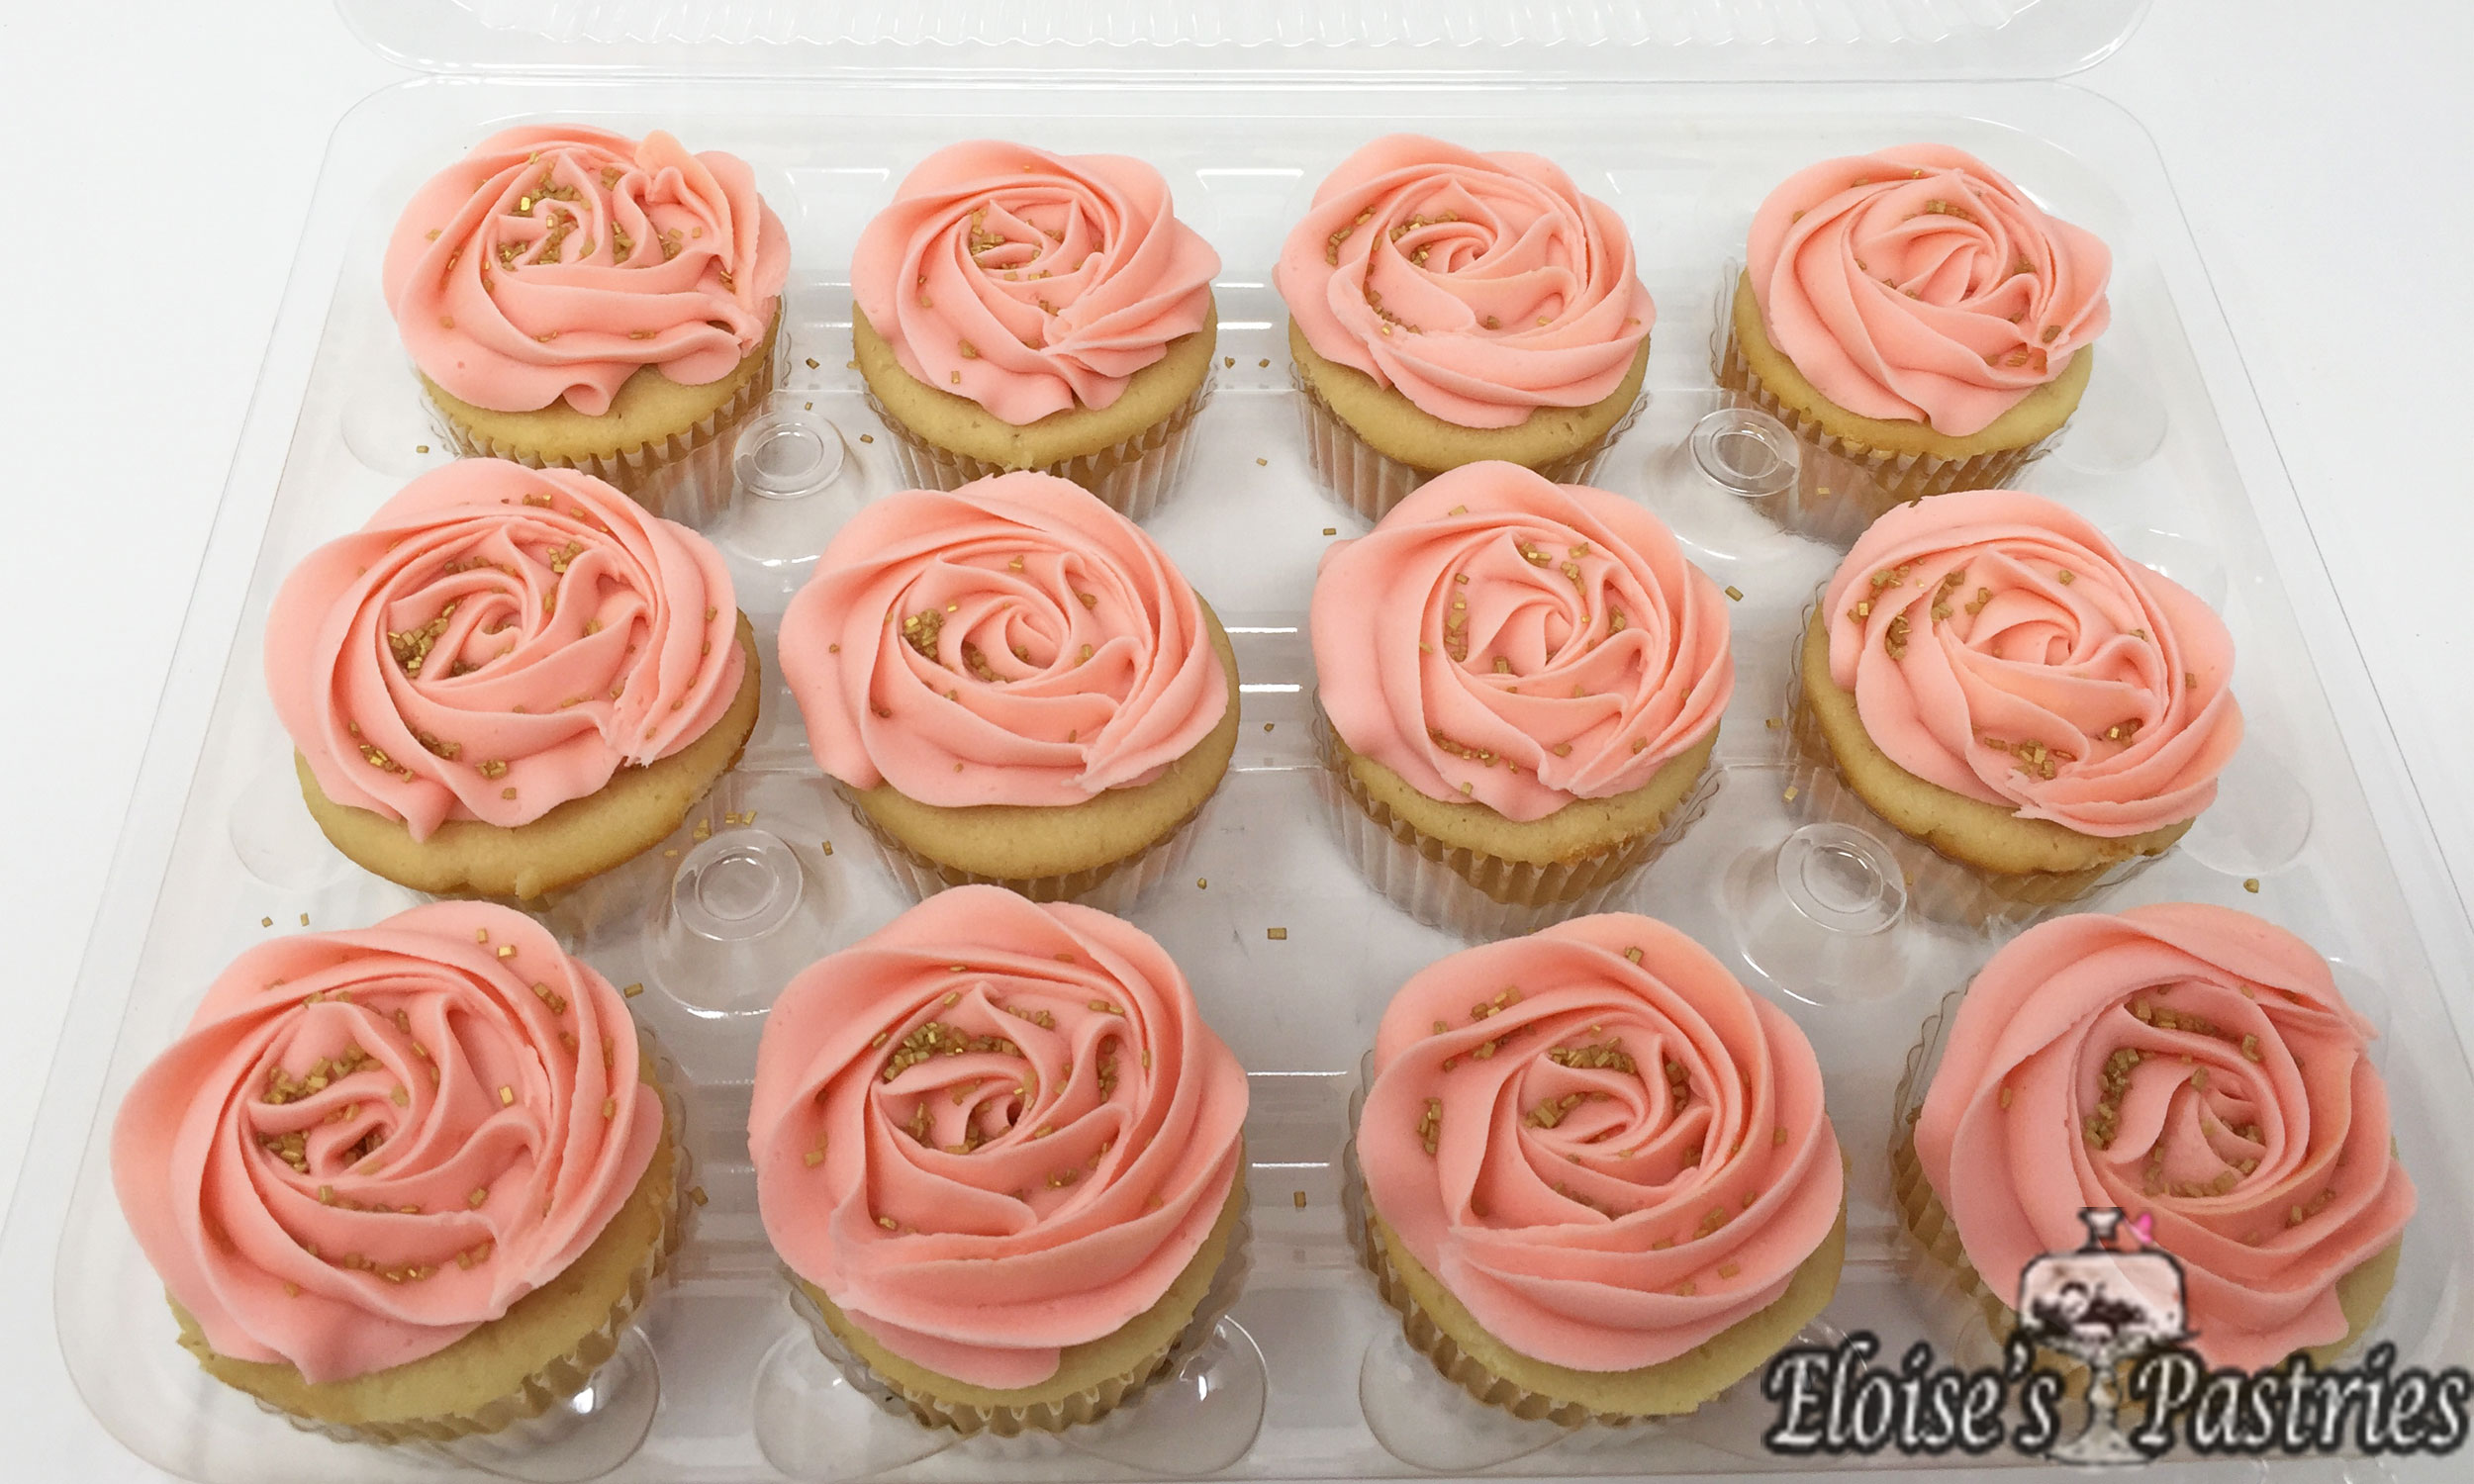 Pink & Gold Frosted Cupcakes